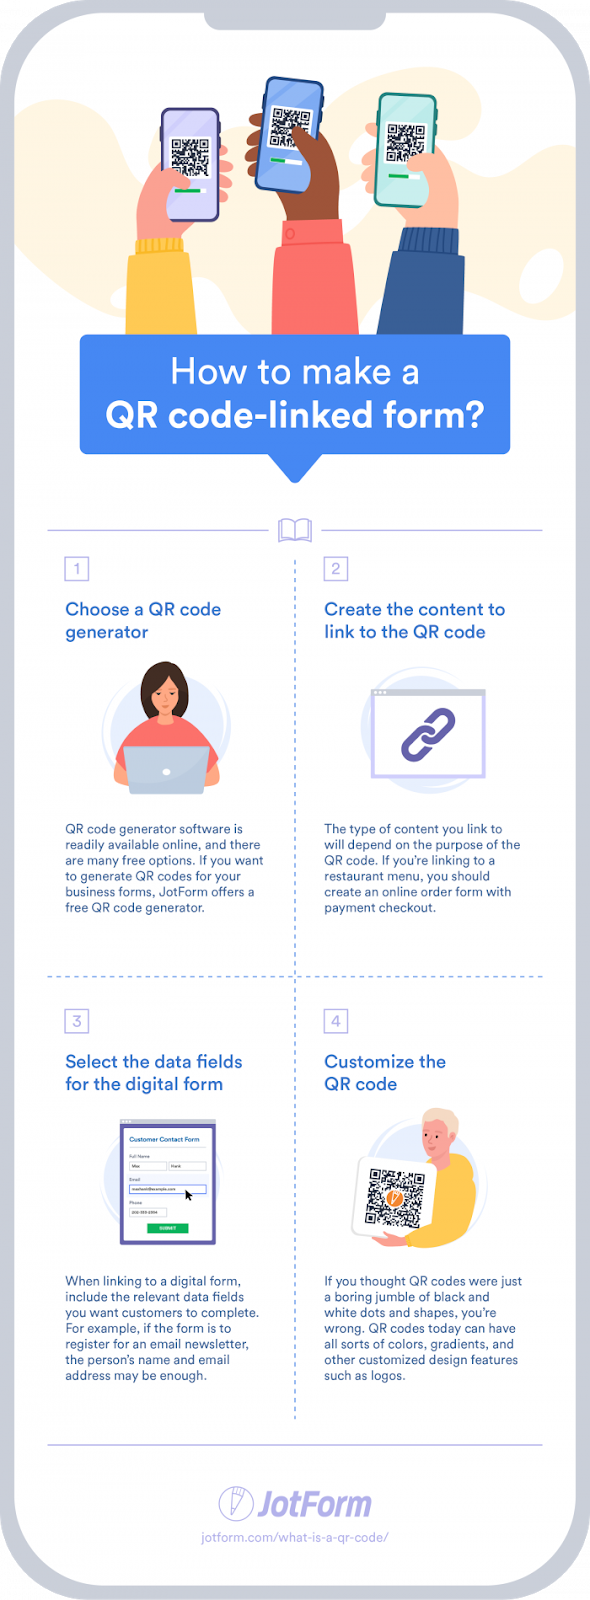 How to make a QR code-linked form infographic design